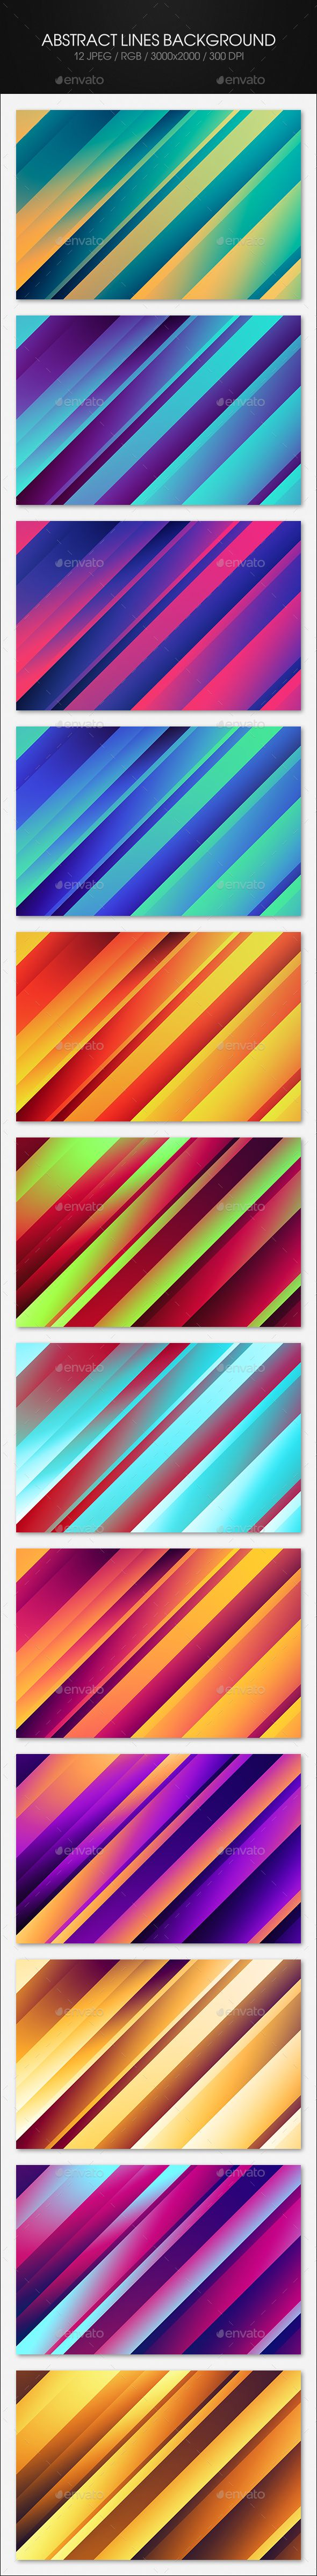 #Abstract Lines Background - Abstract #Backgrounds